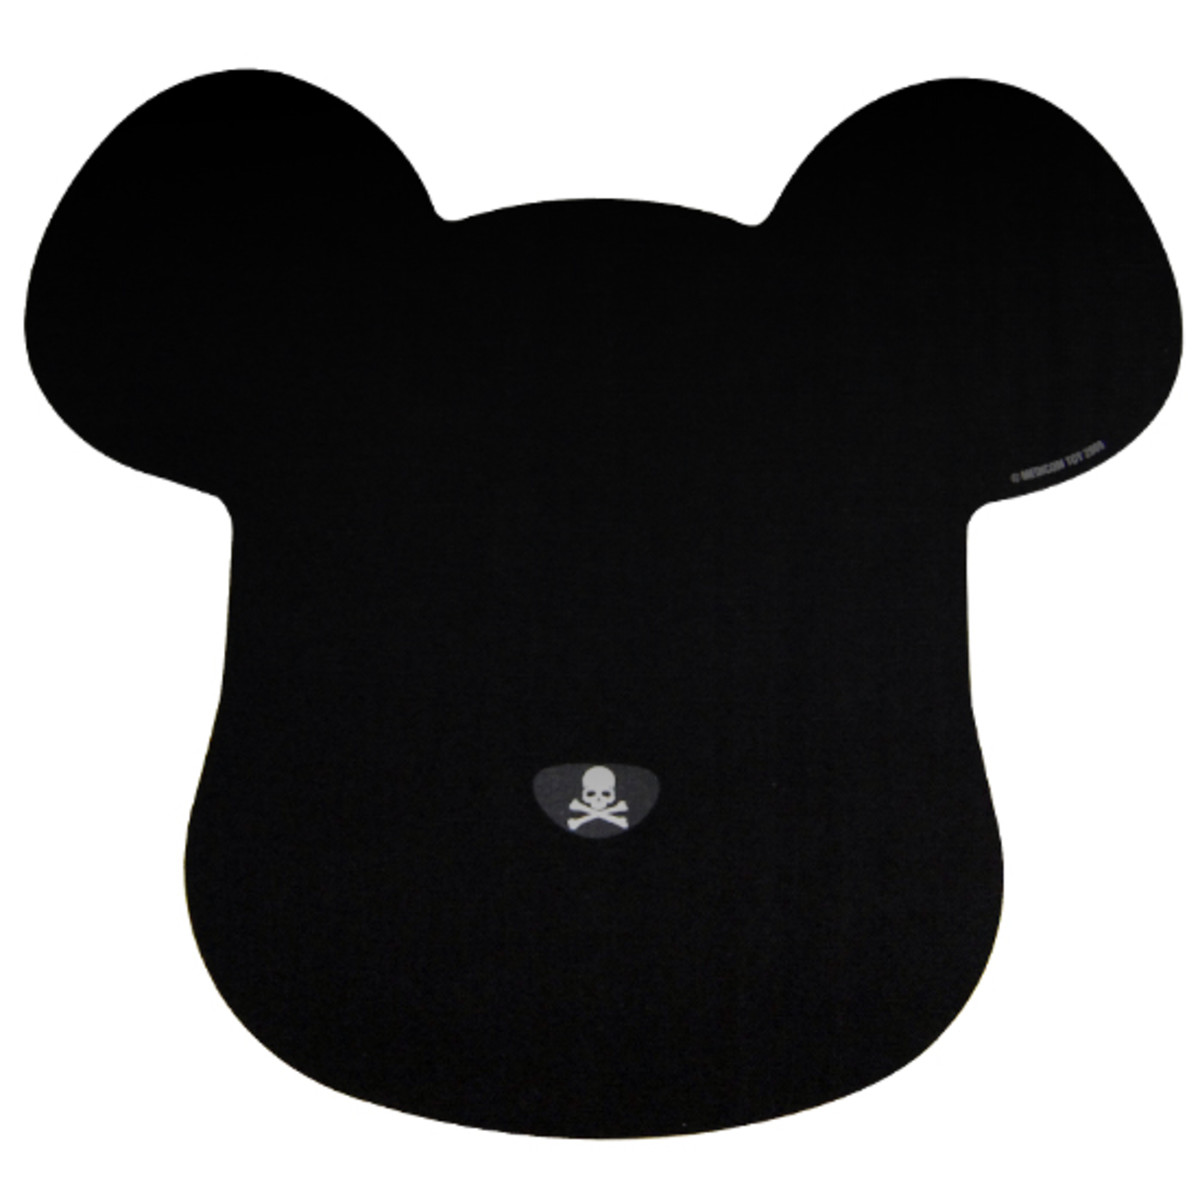 mouse-pad_2